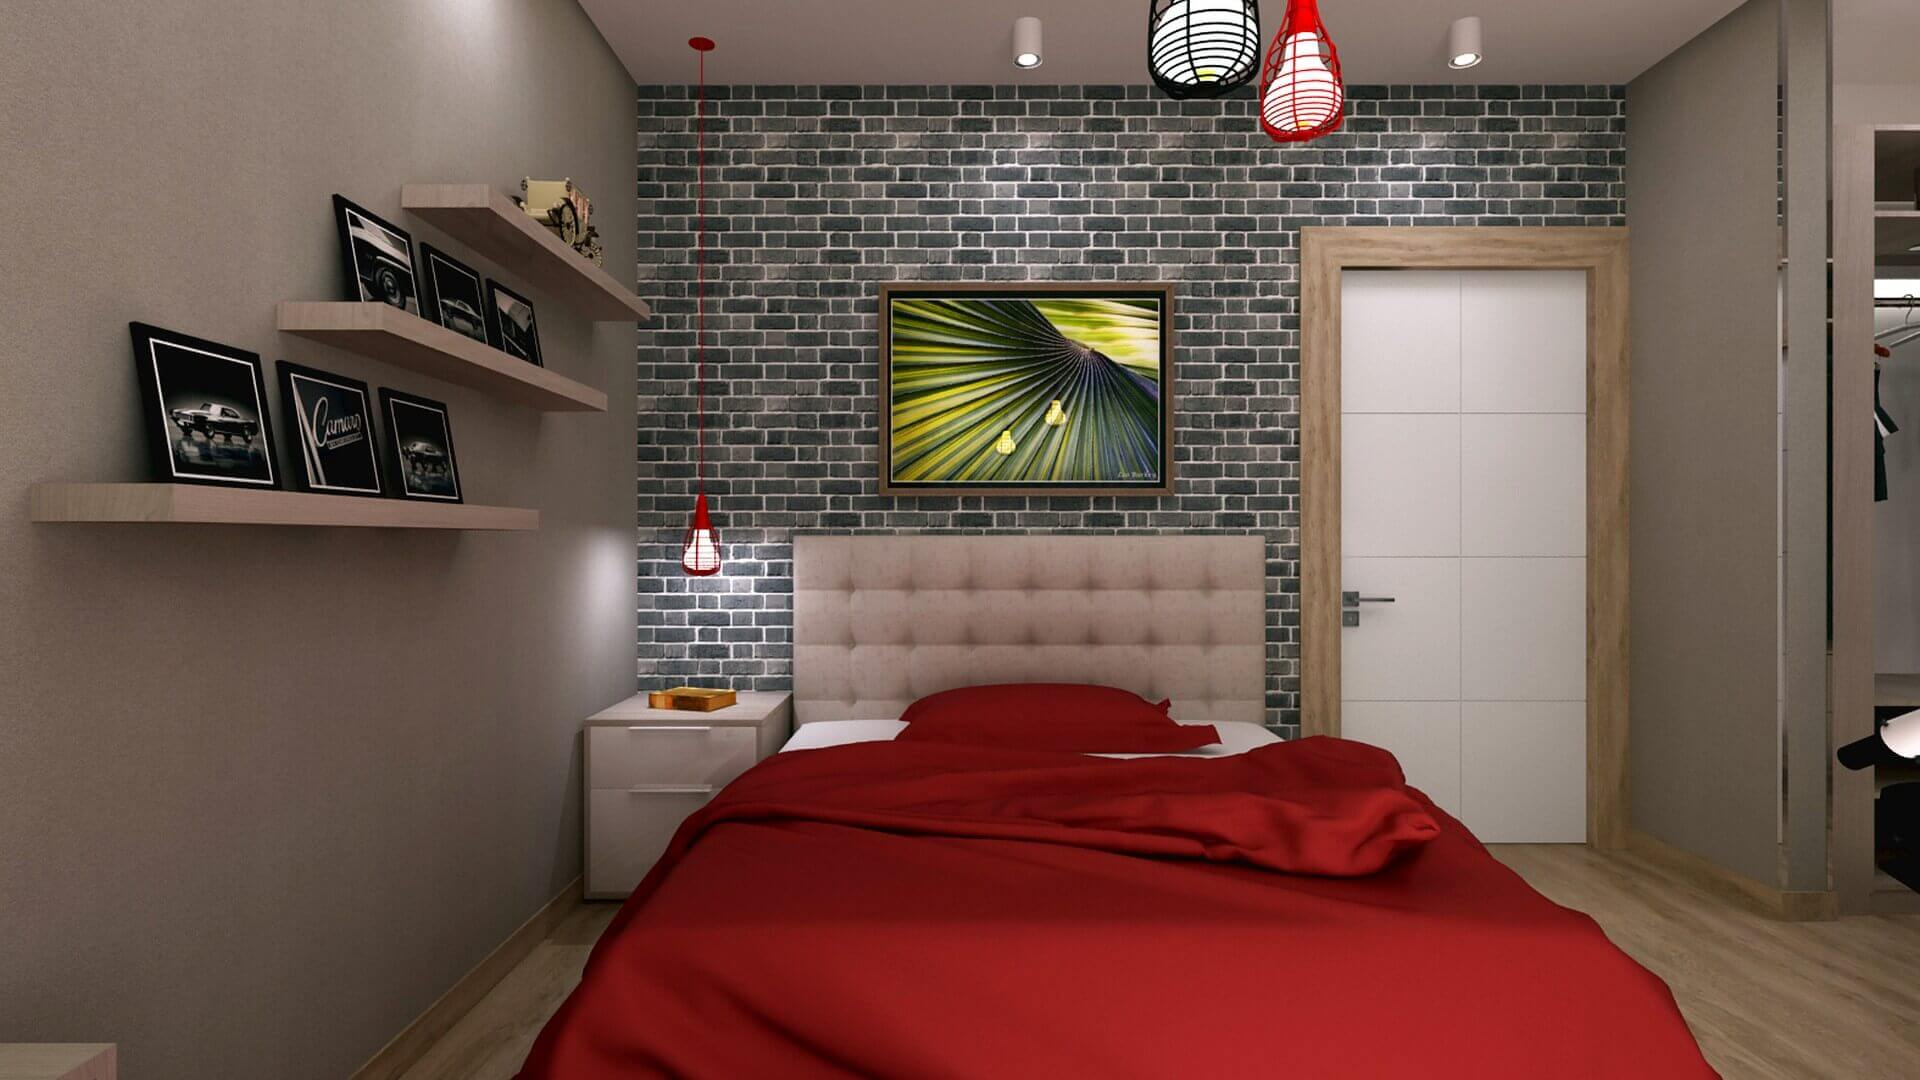 House interior architecture decoration 3121 SA House Residential